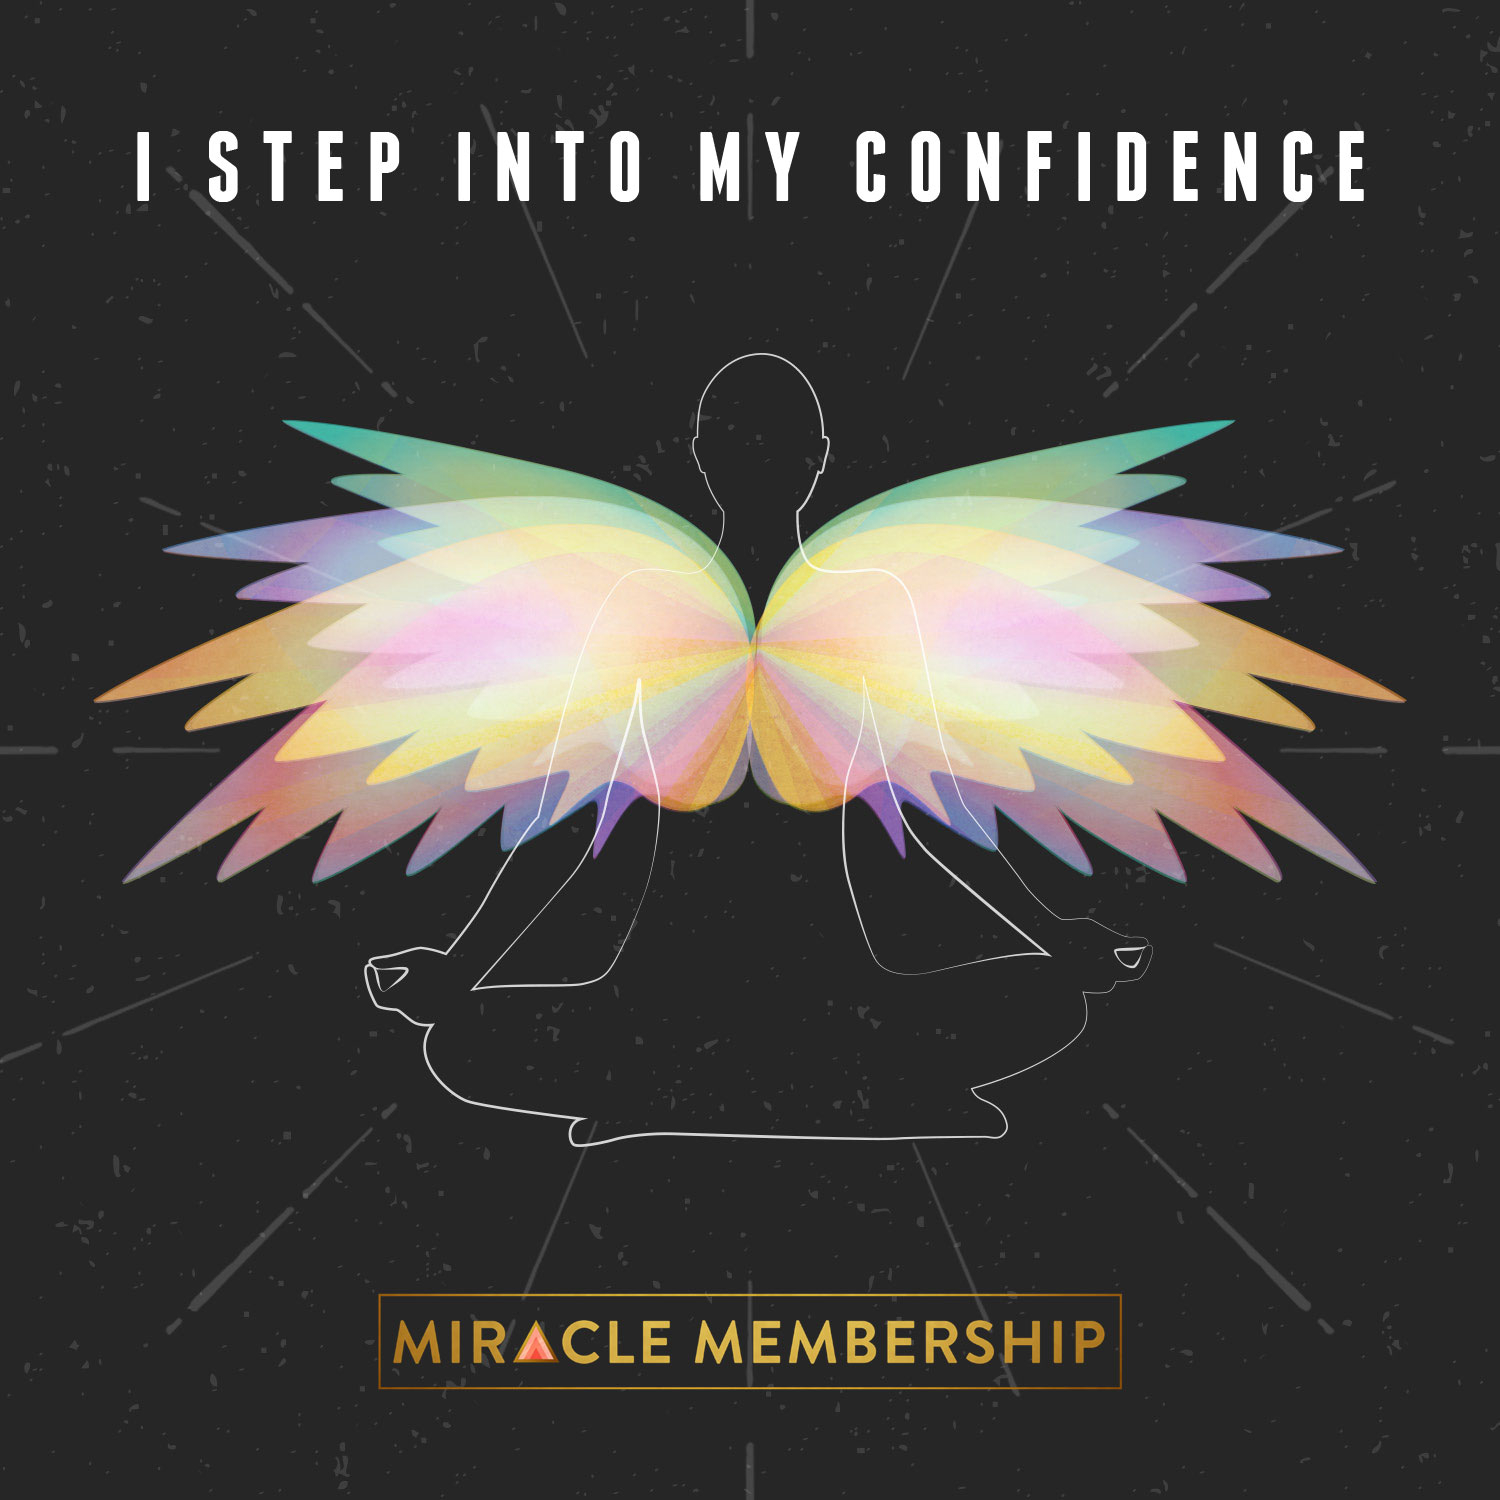 Miracle Membership by Gabby Bernstein | March 2019 mantra | I step into my confidence